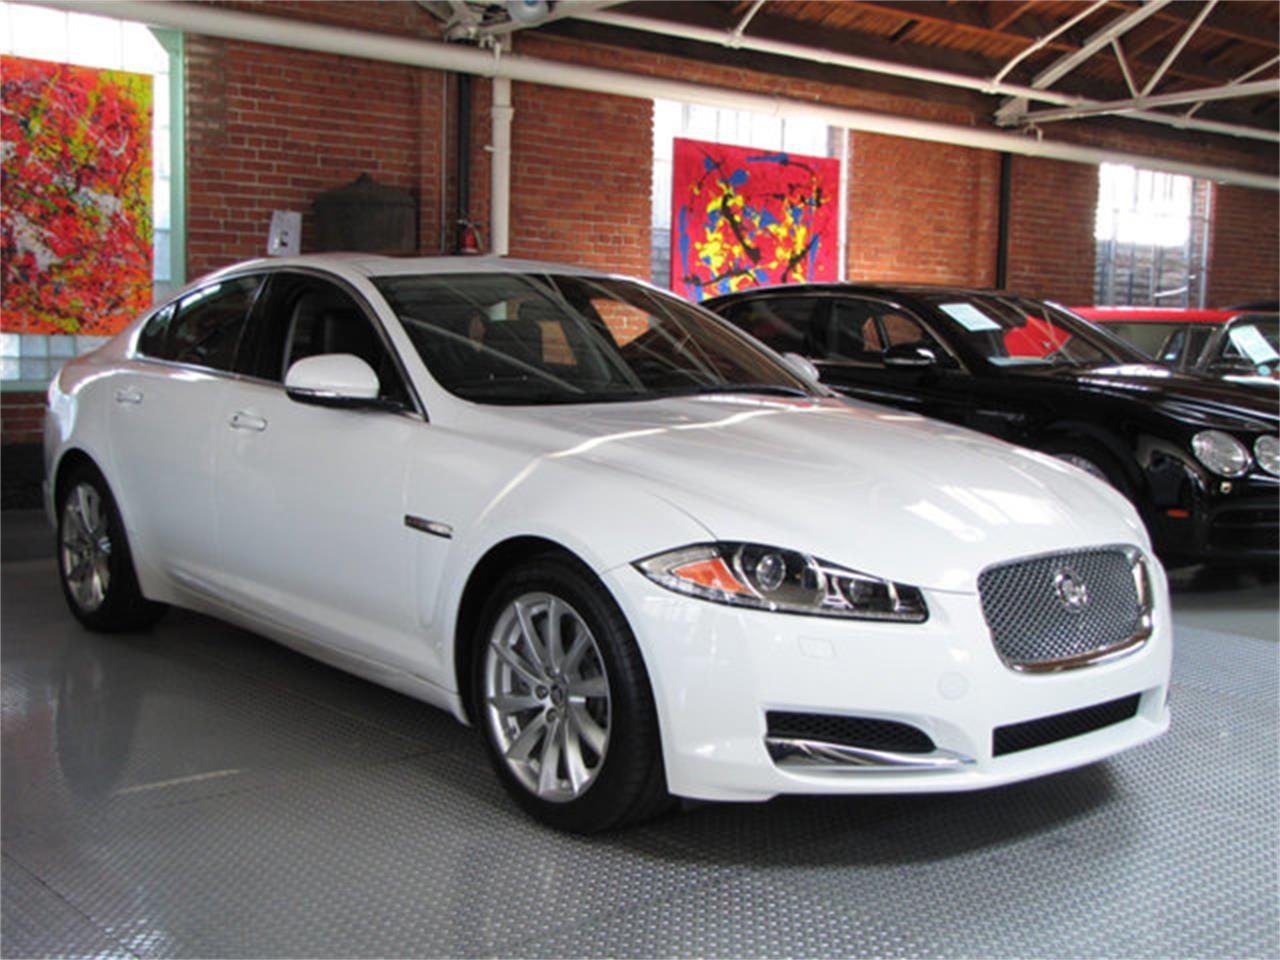 Large Picture of '13 Jaguar XF located in Hollywood California - $23,750.00 - LEJJ